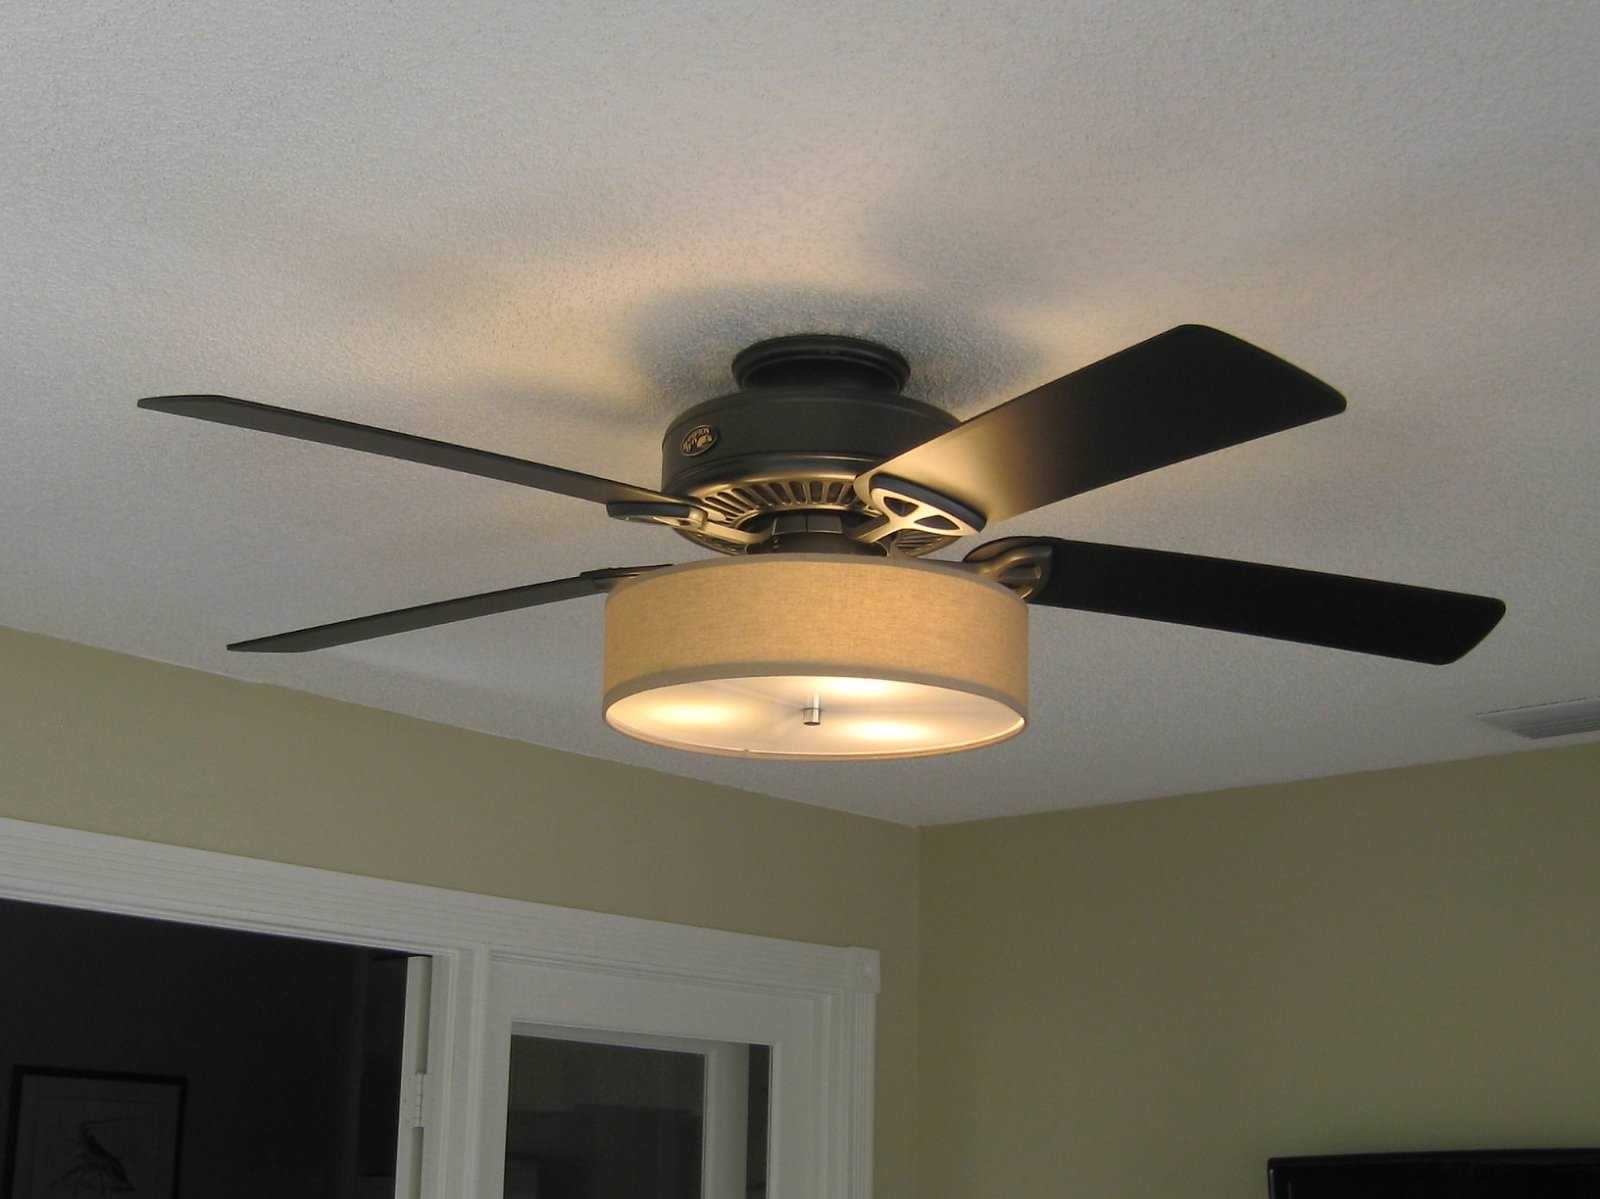 Ceiling Fans With Lights : Low profile linen drum shade light kit for ceiling fan s